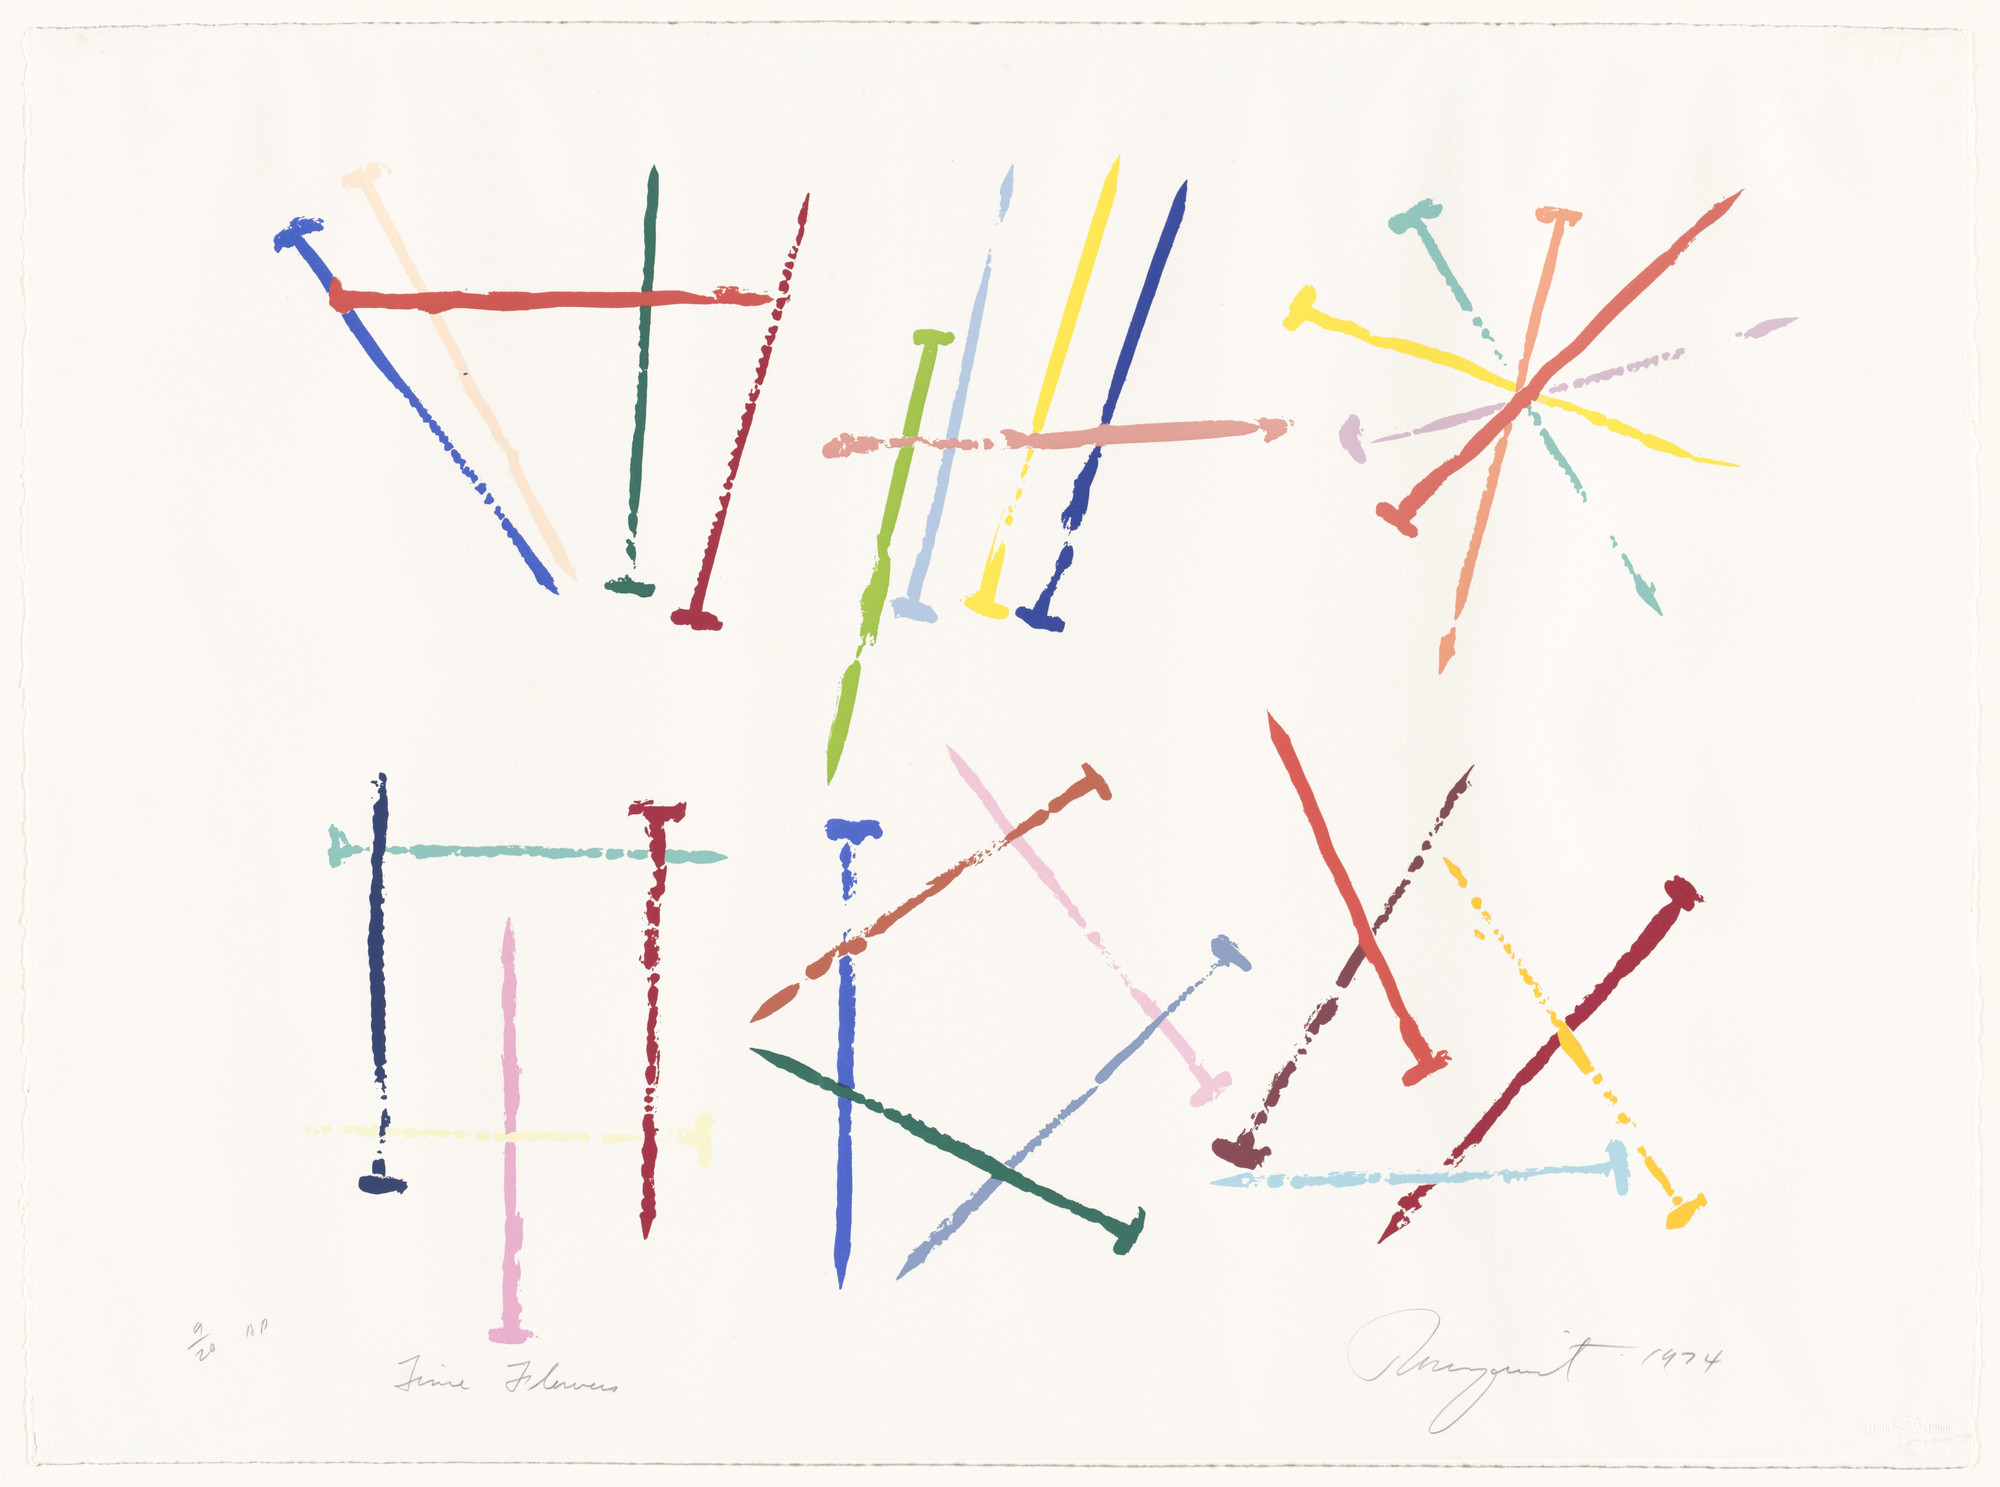 James Rosenquist. Time Flowers from the series Nails. 1974